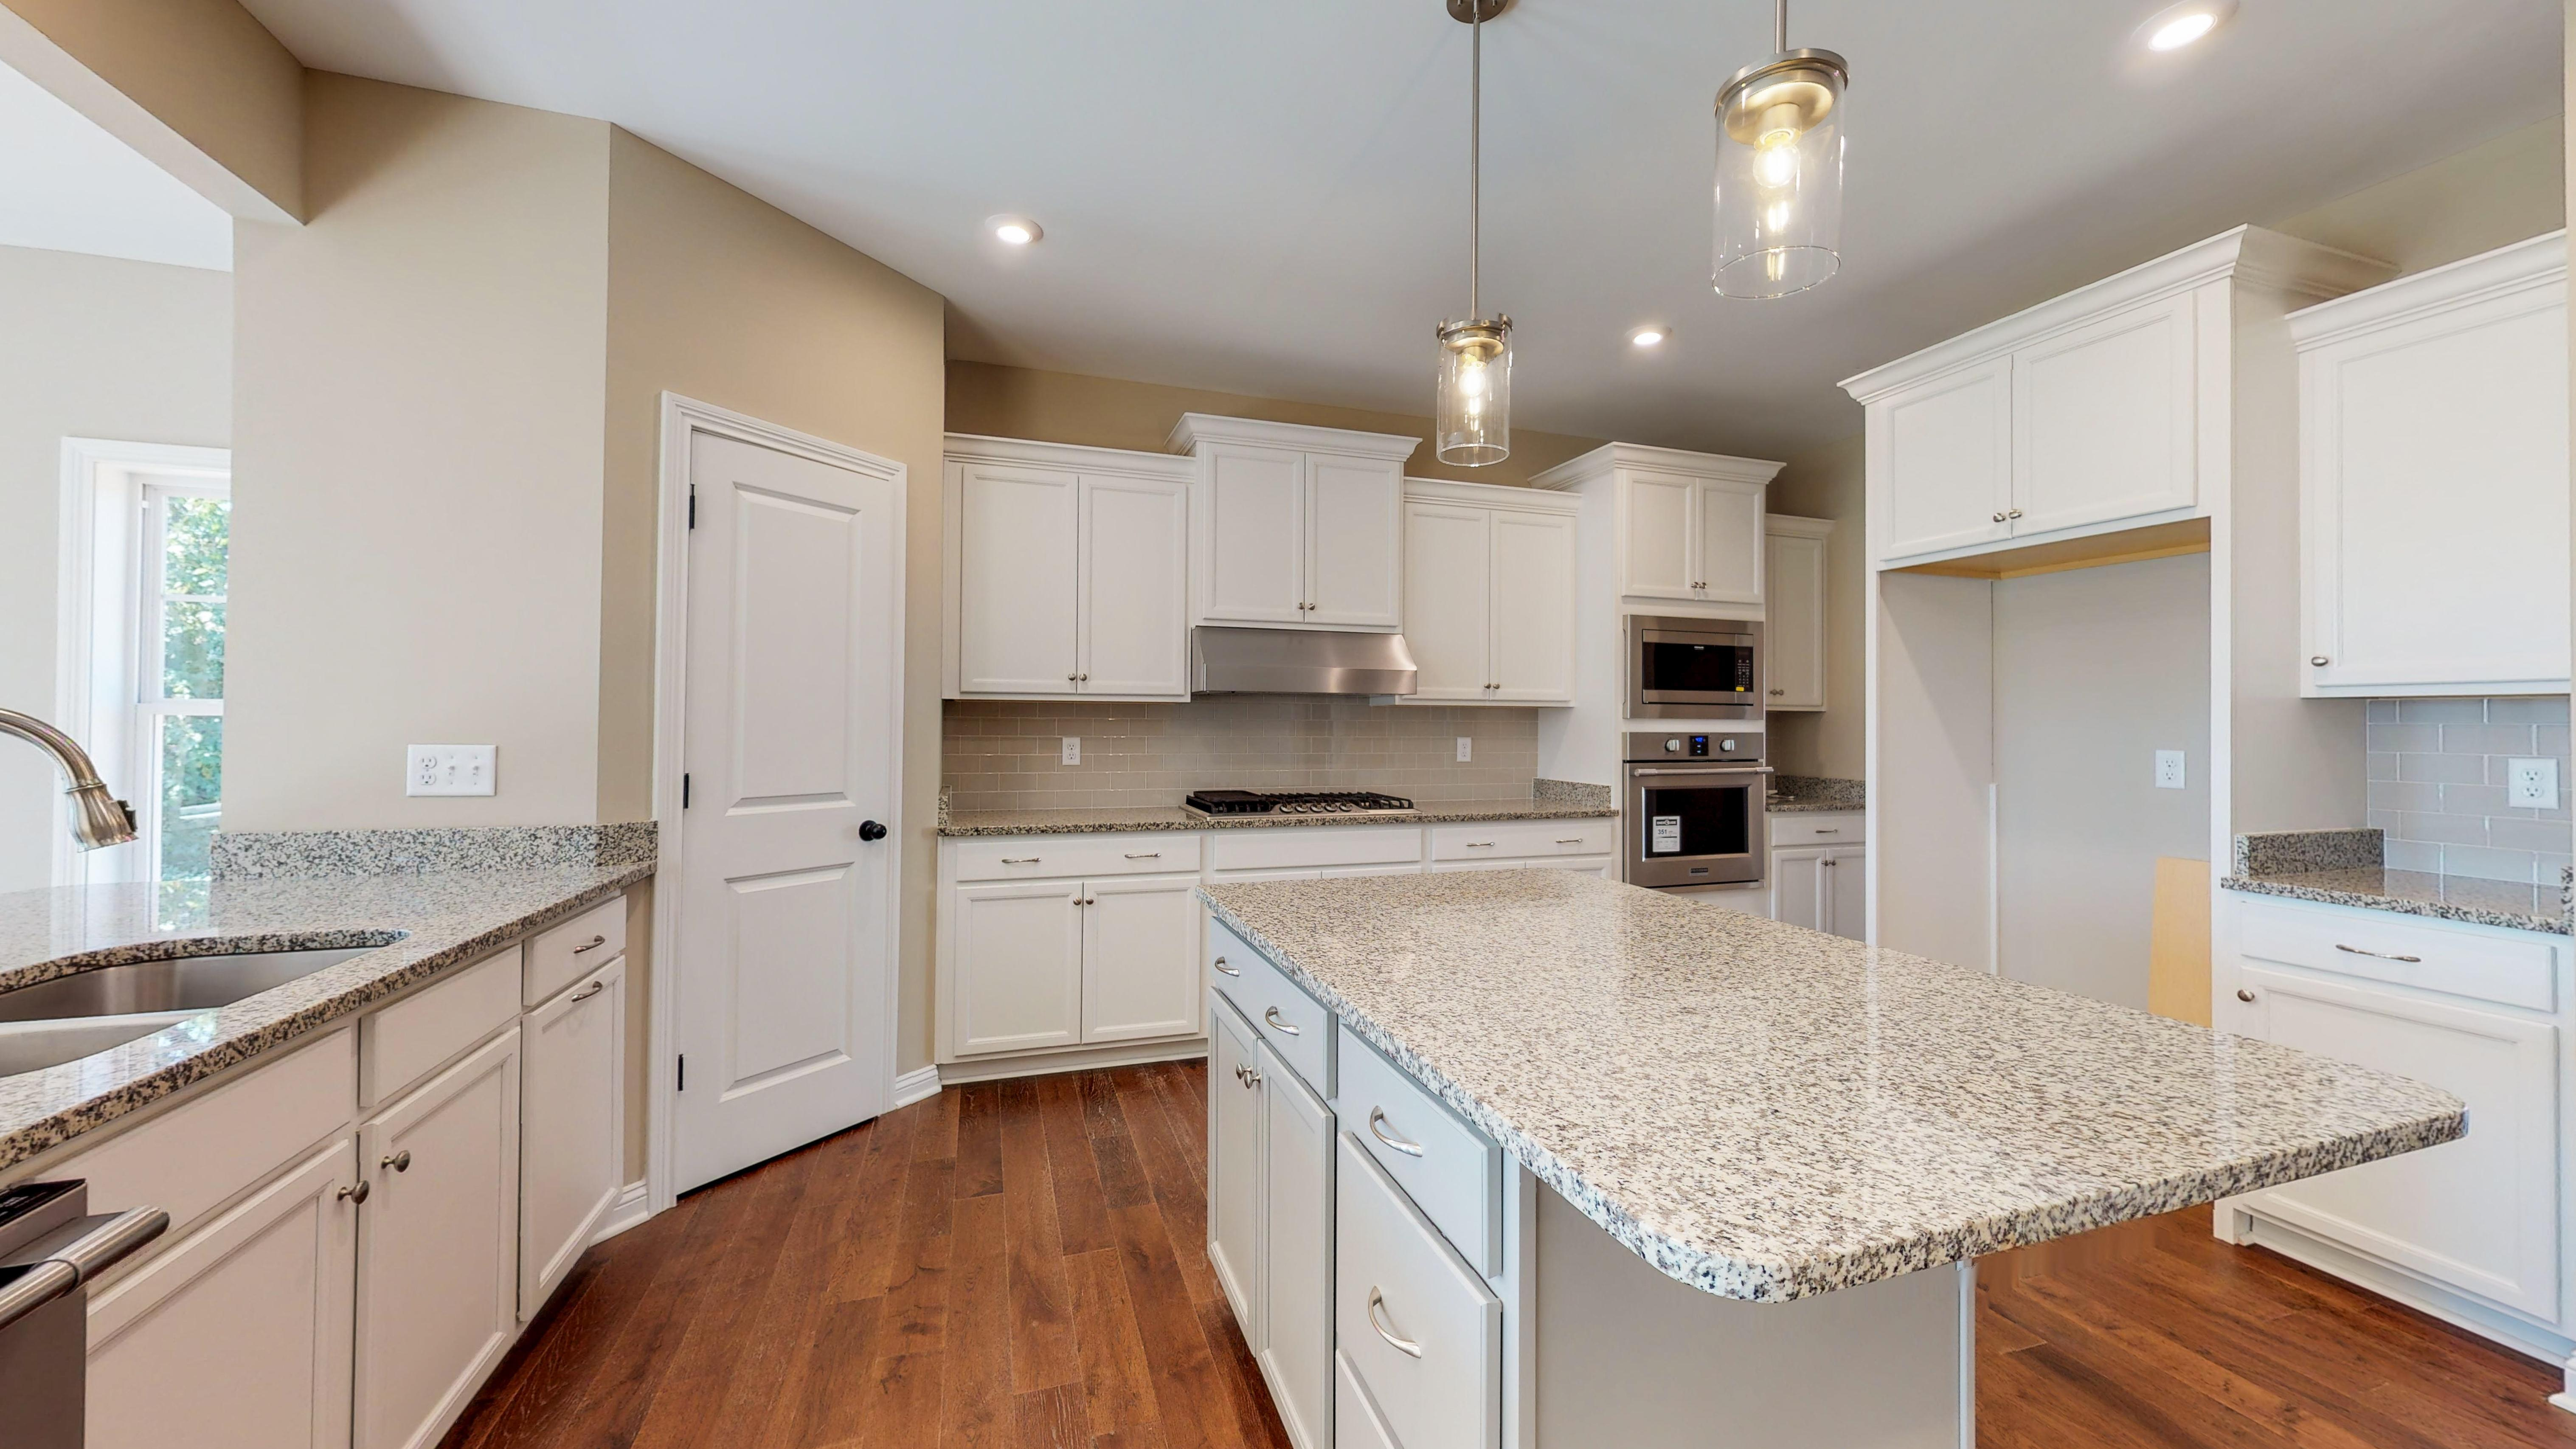 Kitchen featured in The Jackie - 3rd Car By James Monroe Homes in Lexington, KY